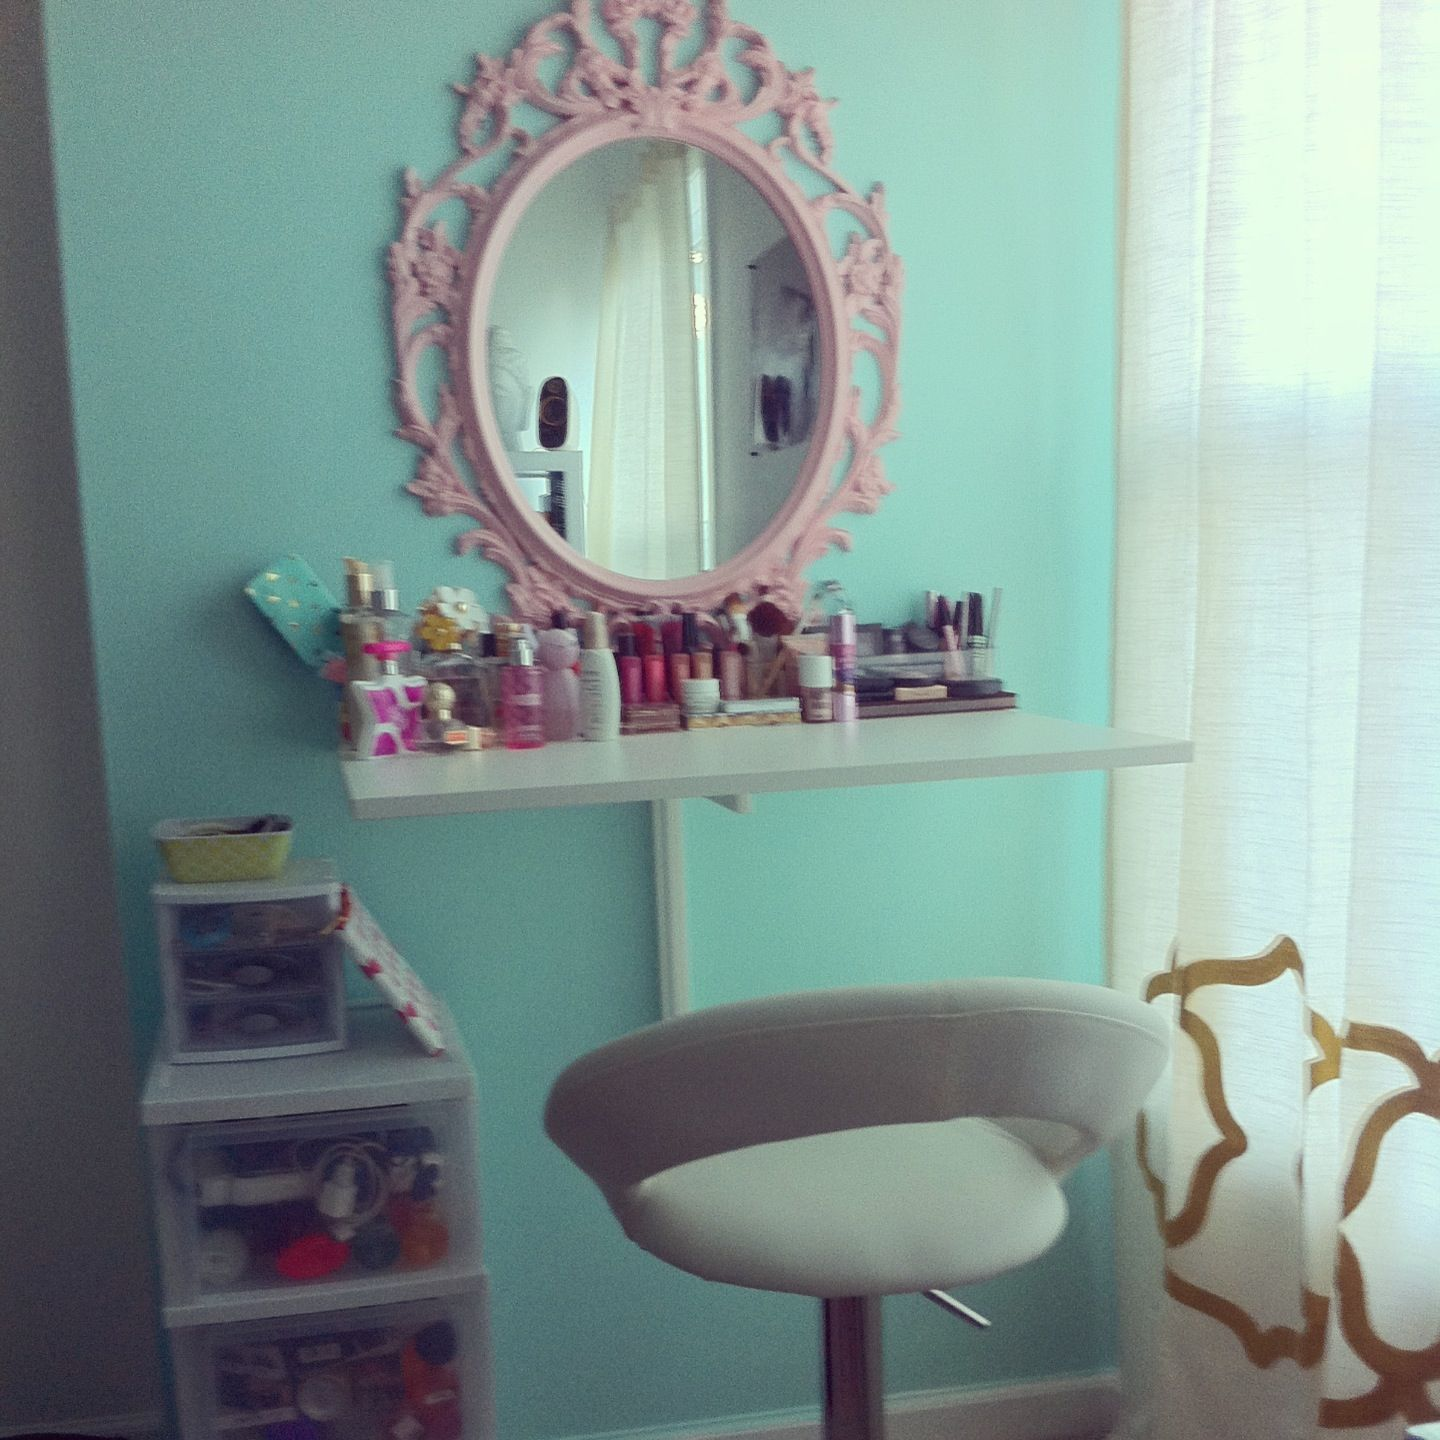 IKEA DIY Vanity Mirror with Lights